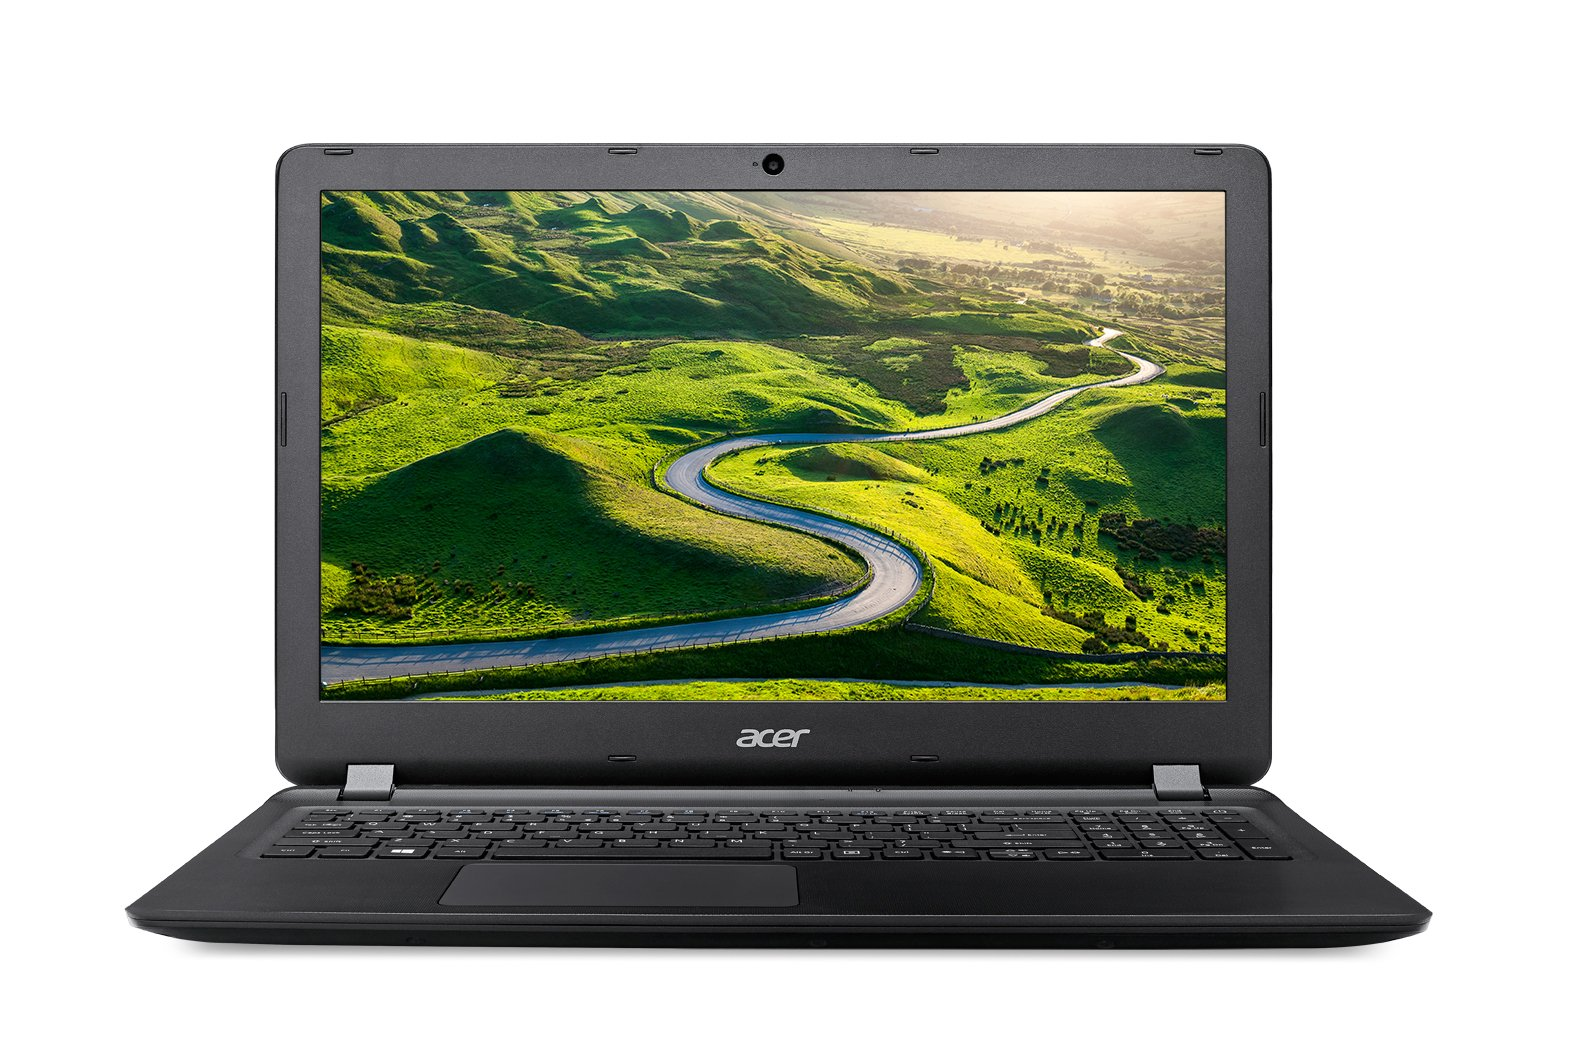 "Acer Aspire ES 15 (ES1-572-34K9) i3-6006U/4 GB+N/128 GB SSD+N/A/DVDRW/HD Graphics /15.6"" FHD LED matný/W10 Home/Black"